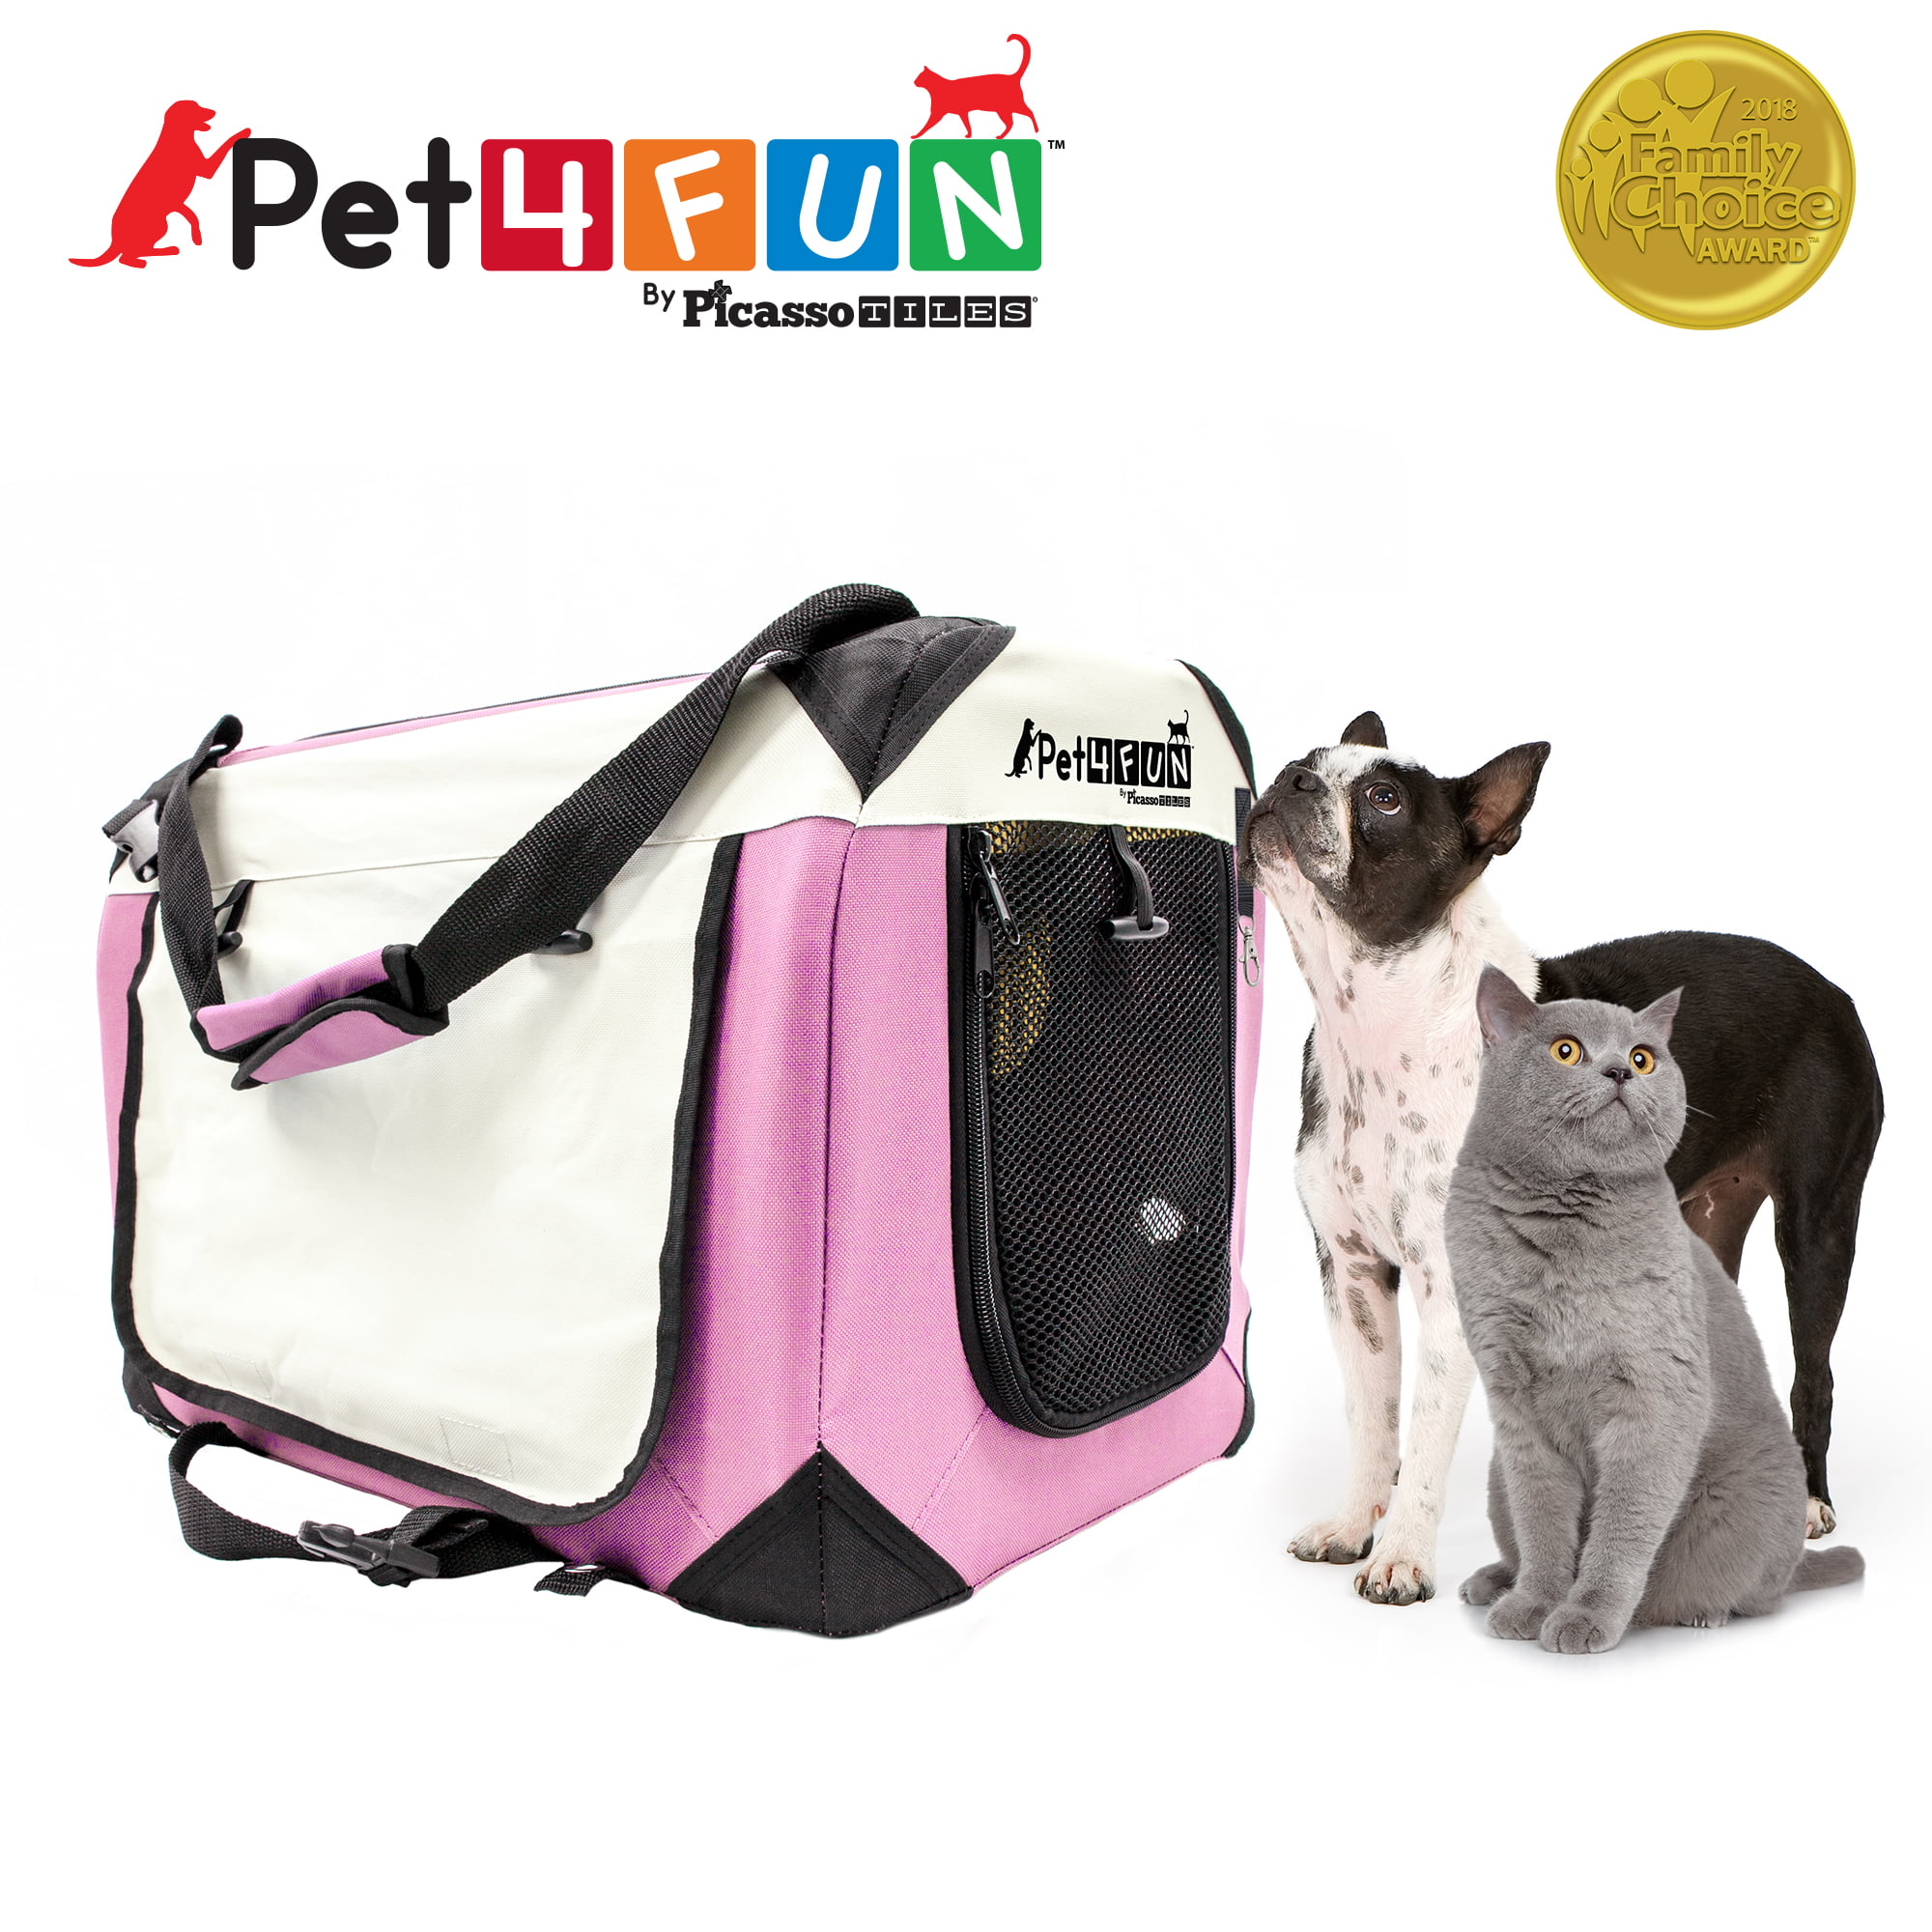 Pet4Fun PN951 Foldable Travel Crate Pet Carrier for Cat or Dog (Medium) PINK by PicassoTiles